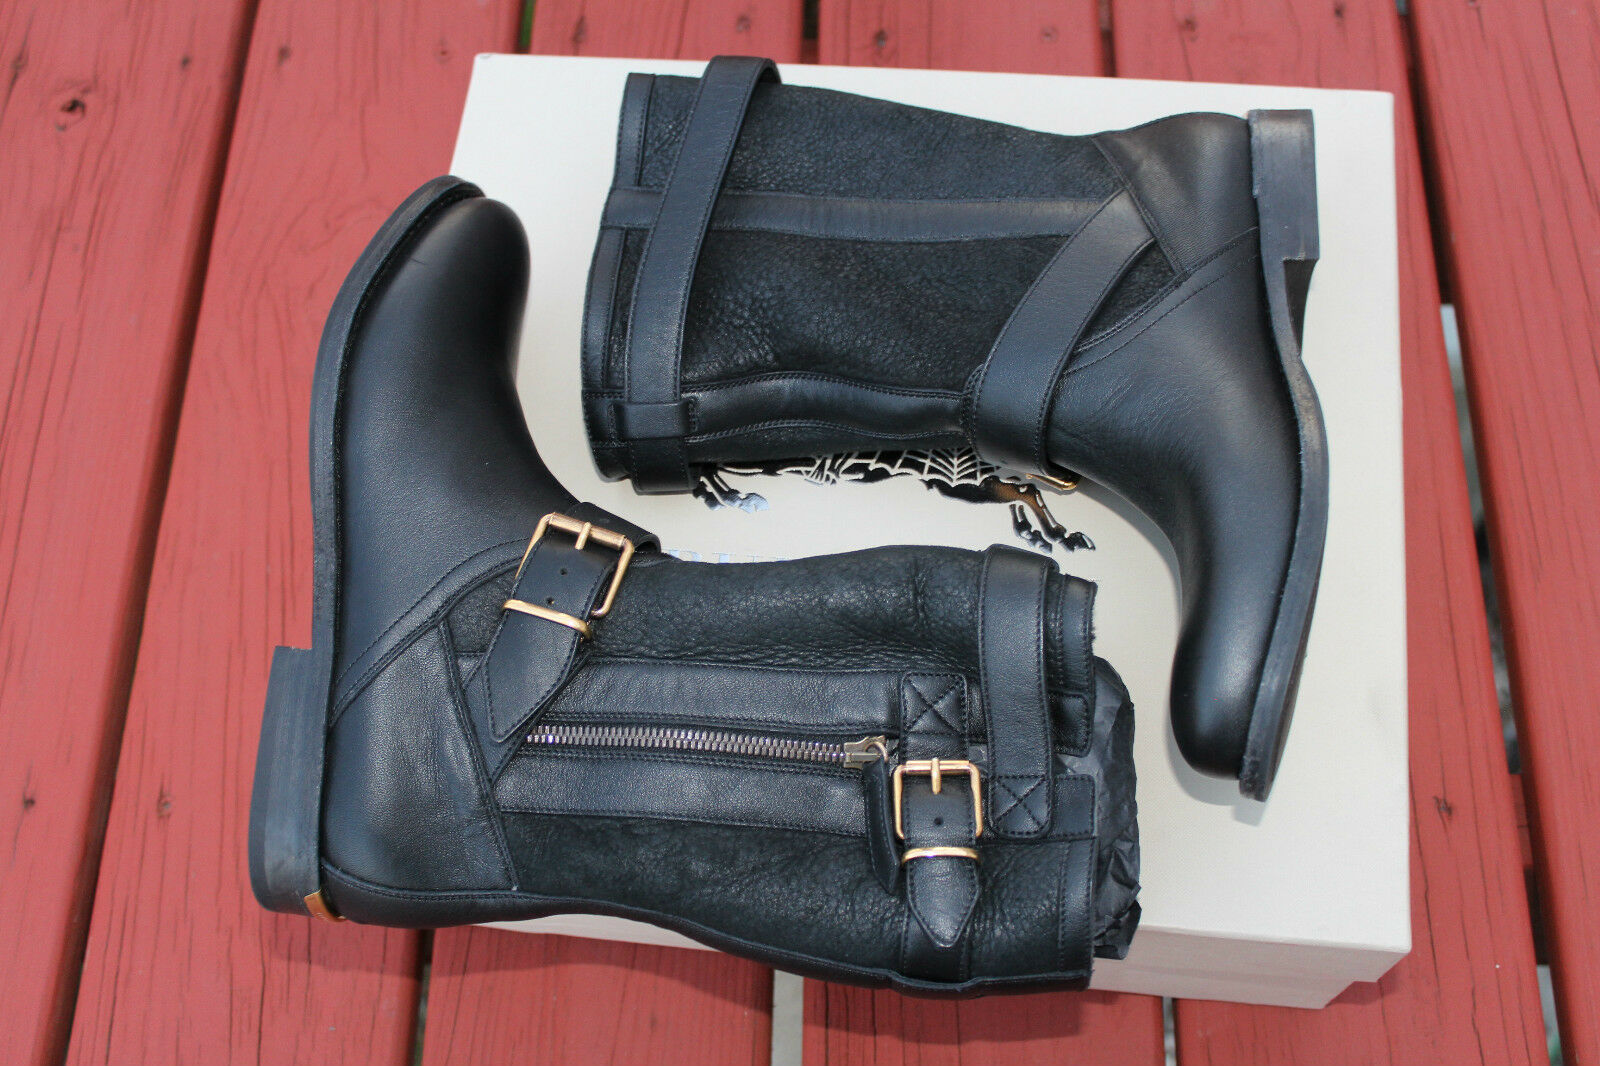 BURBERRY GRANTVILLE BLACK 1 LEATHER  6us  895